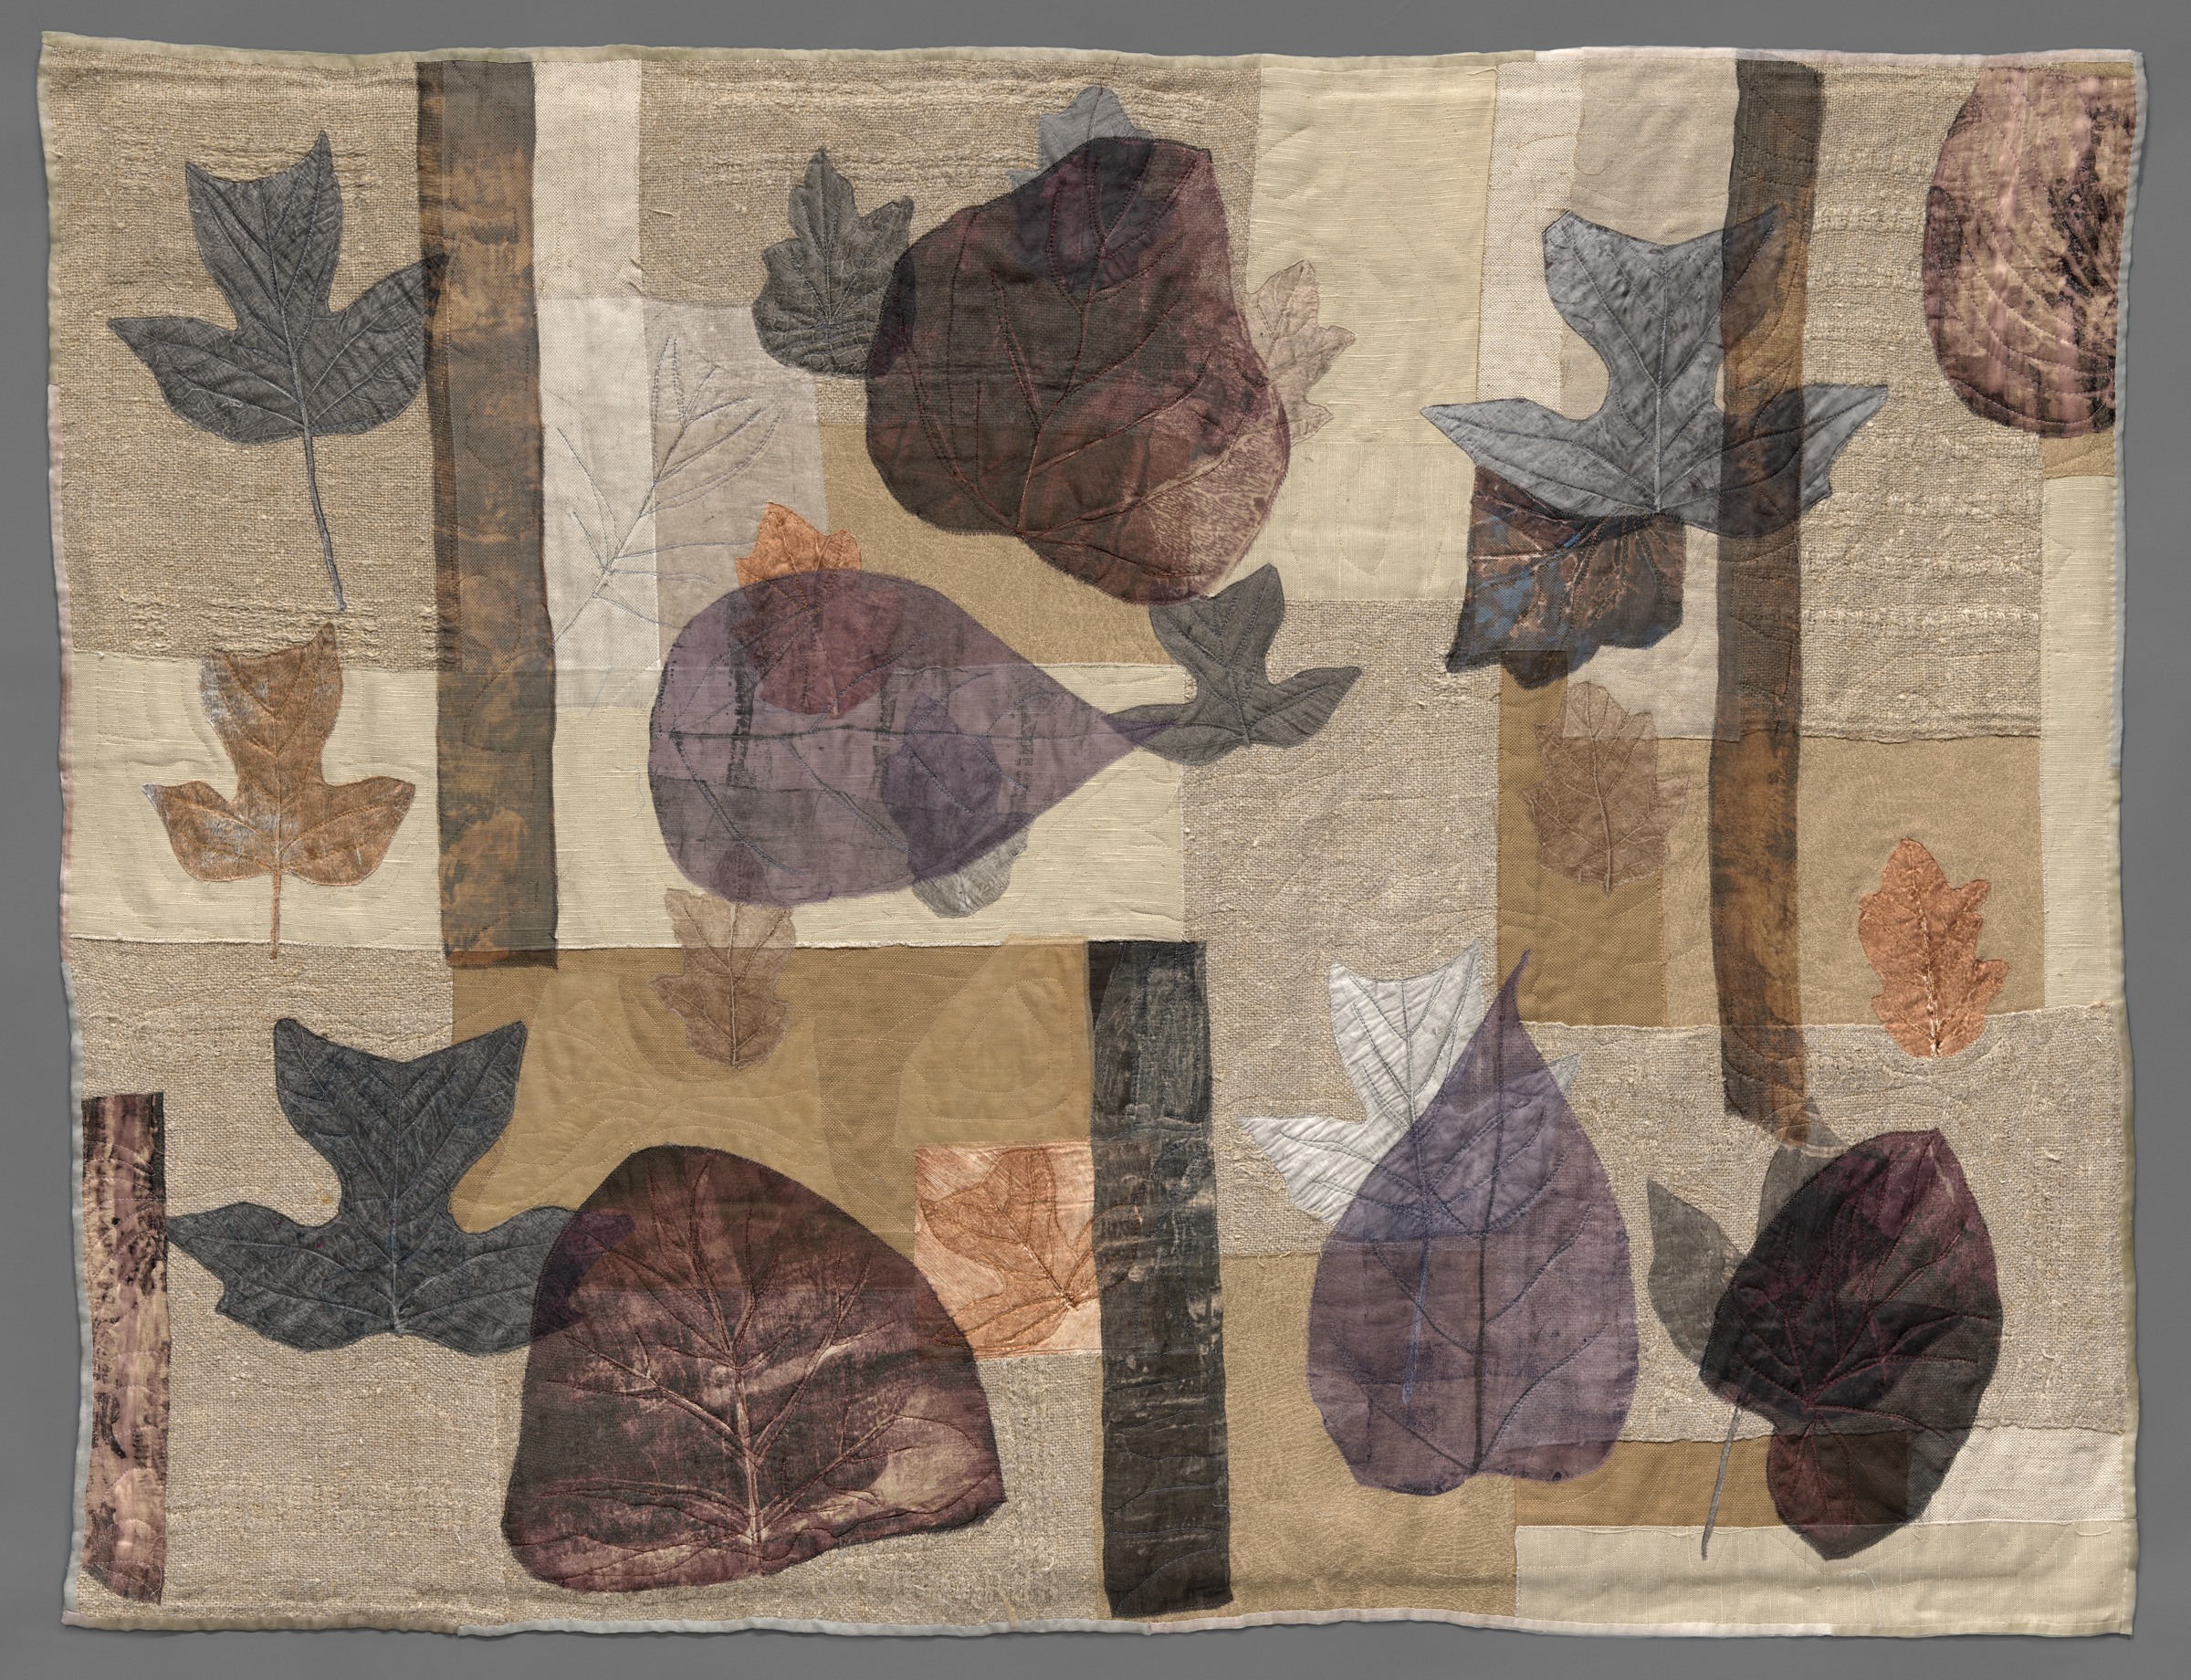 repurposed linen textiles appliqued with collagraph printed leaves